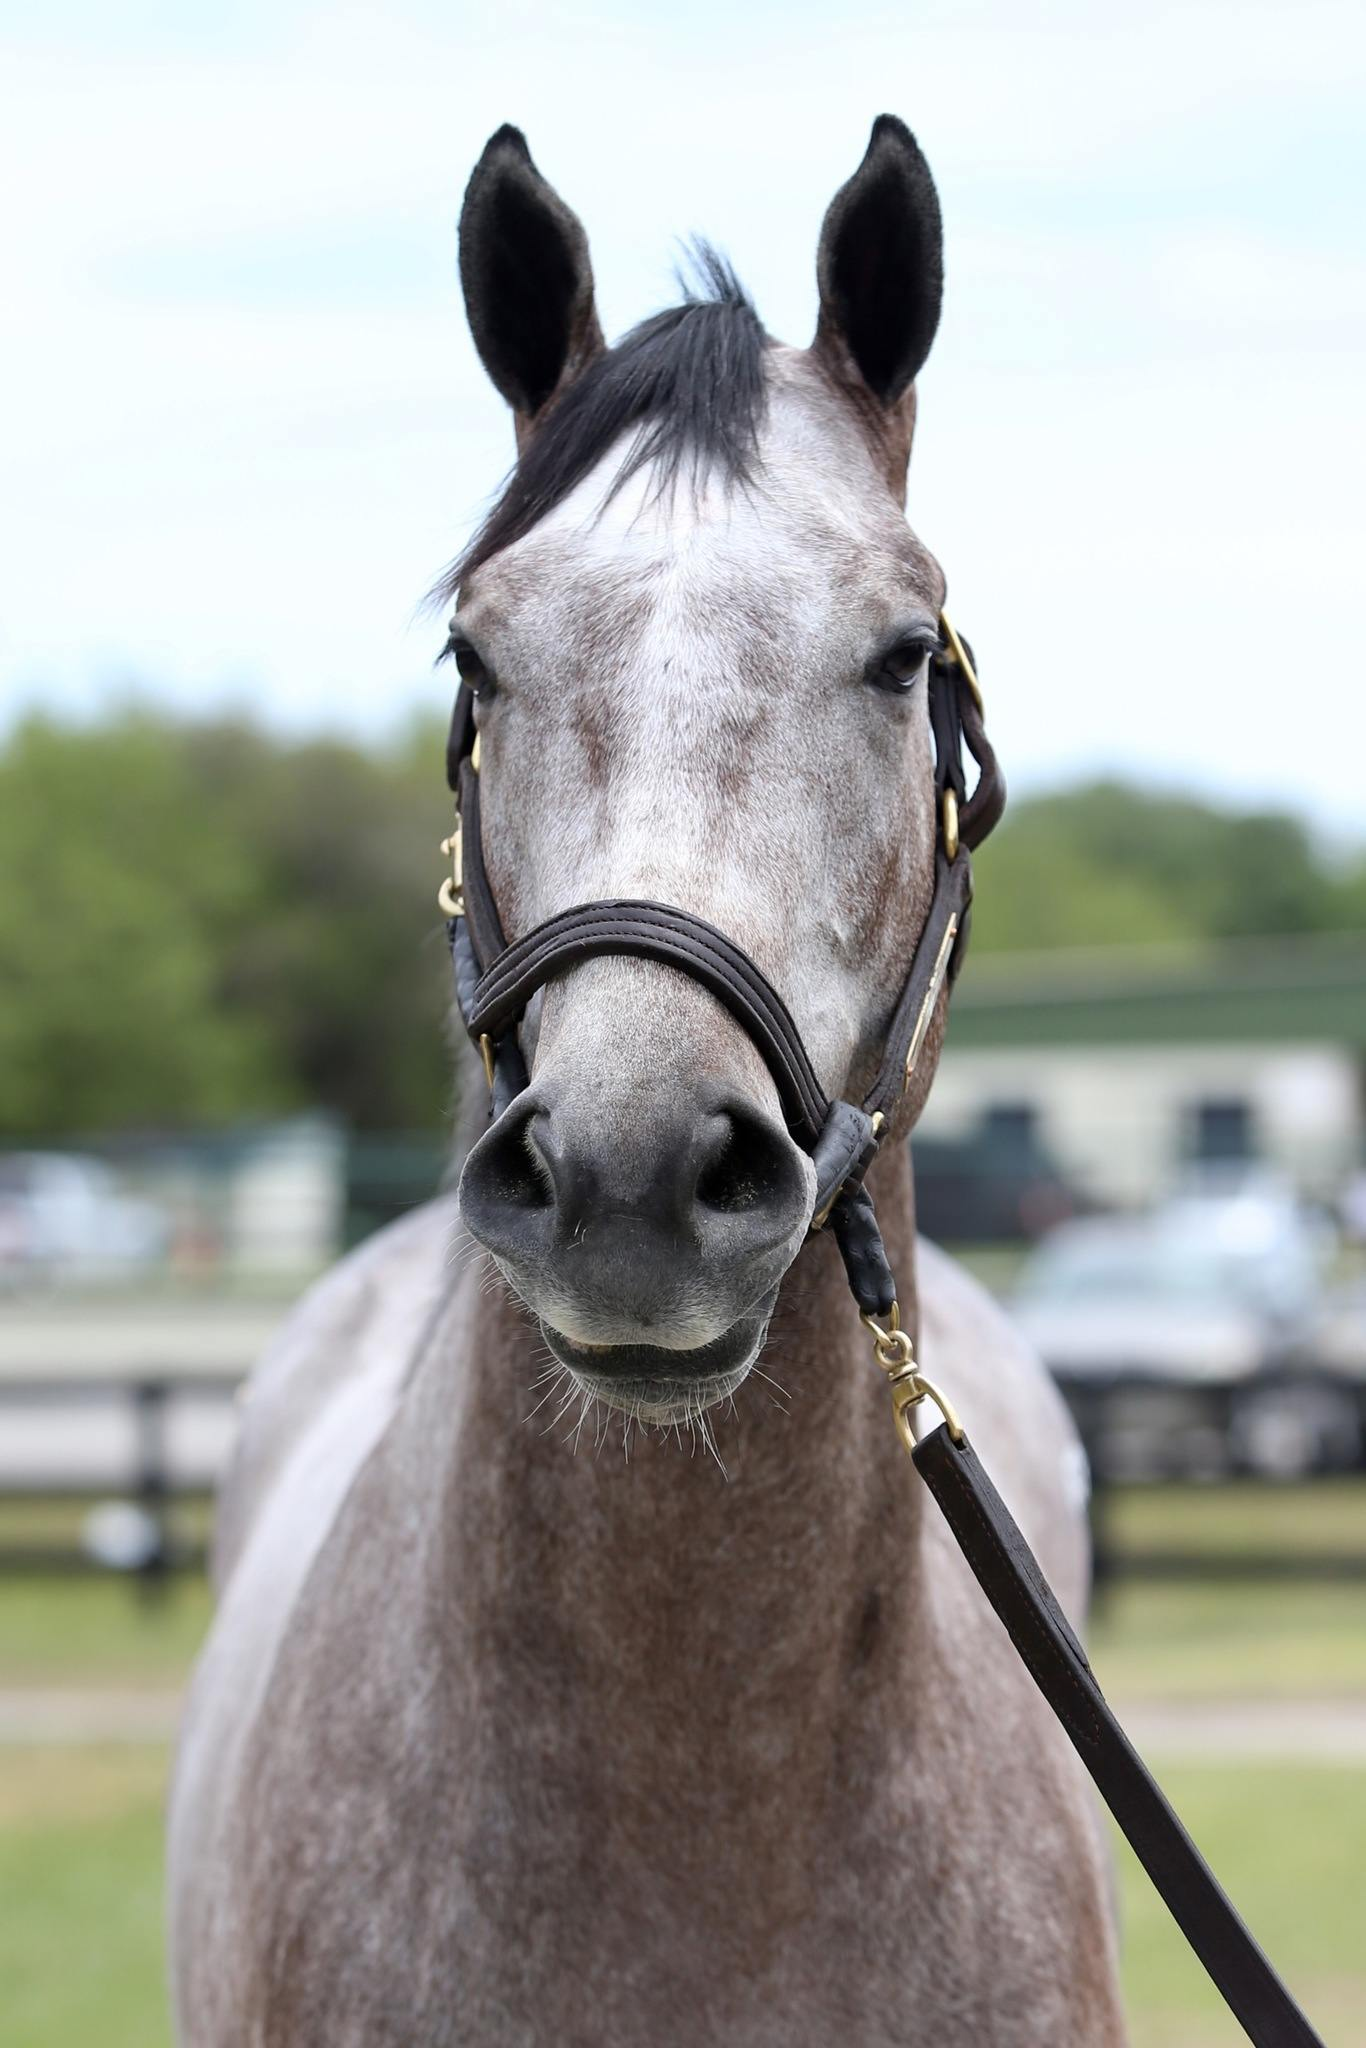 Embolden - 2 year-old VA Bred colt offered by Dare To Dream Stable Horse Racing Partnerships (straight head view)